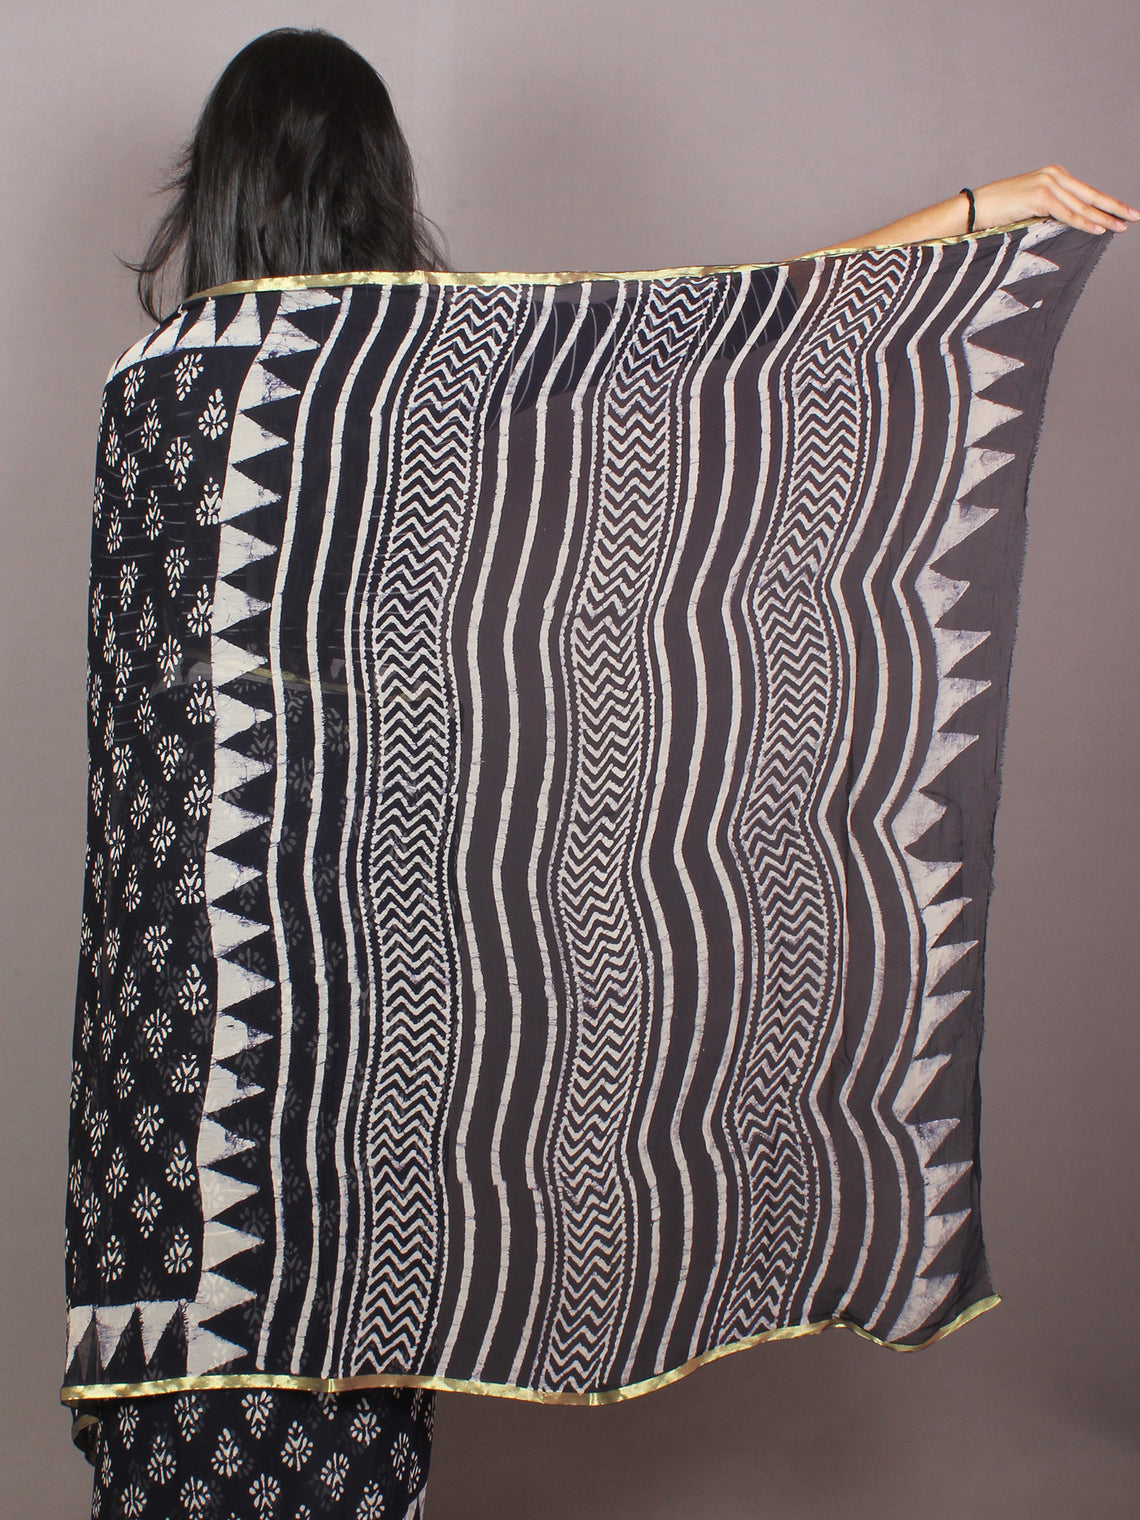 Black White Hand Block Printed in Natural Colors Chiffon Saree - S03170791